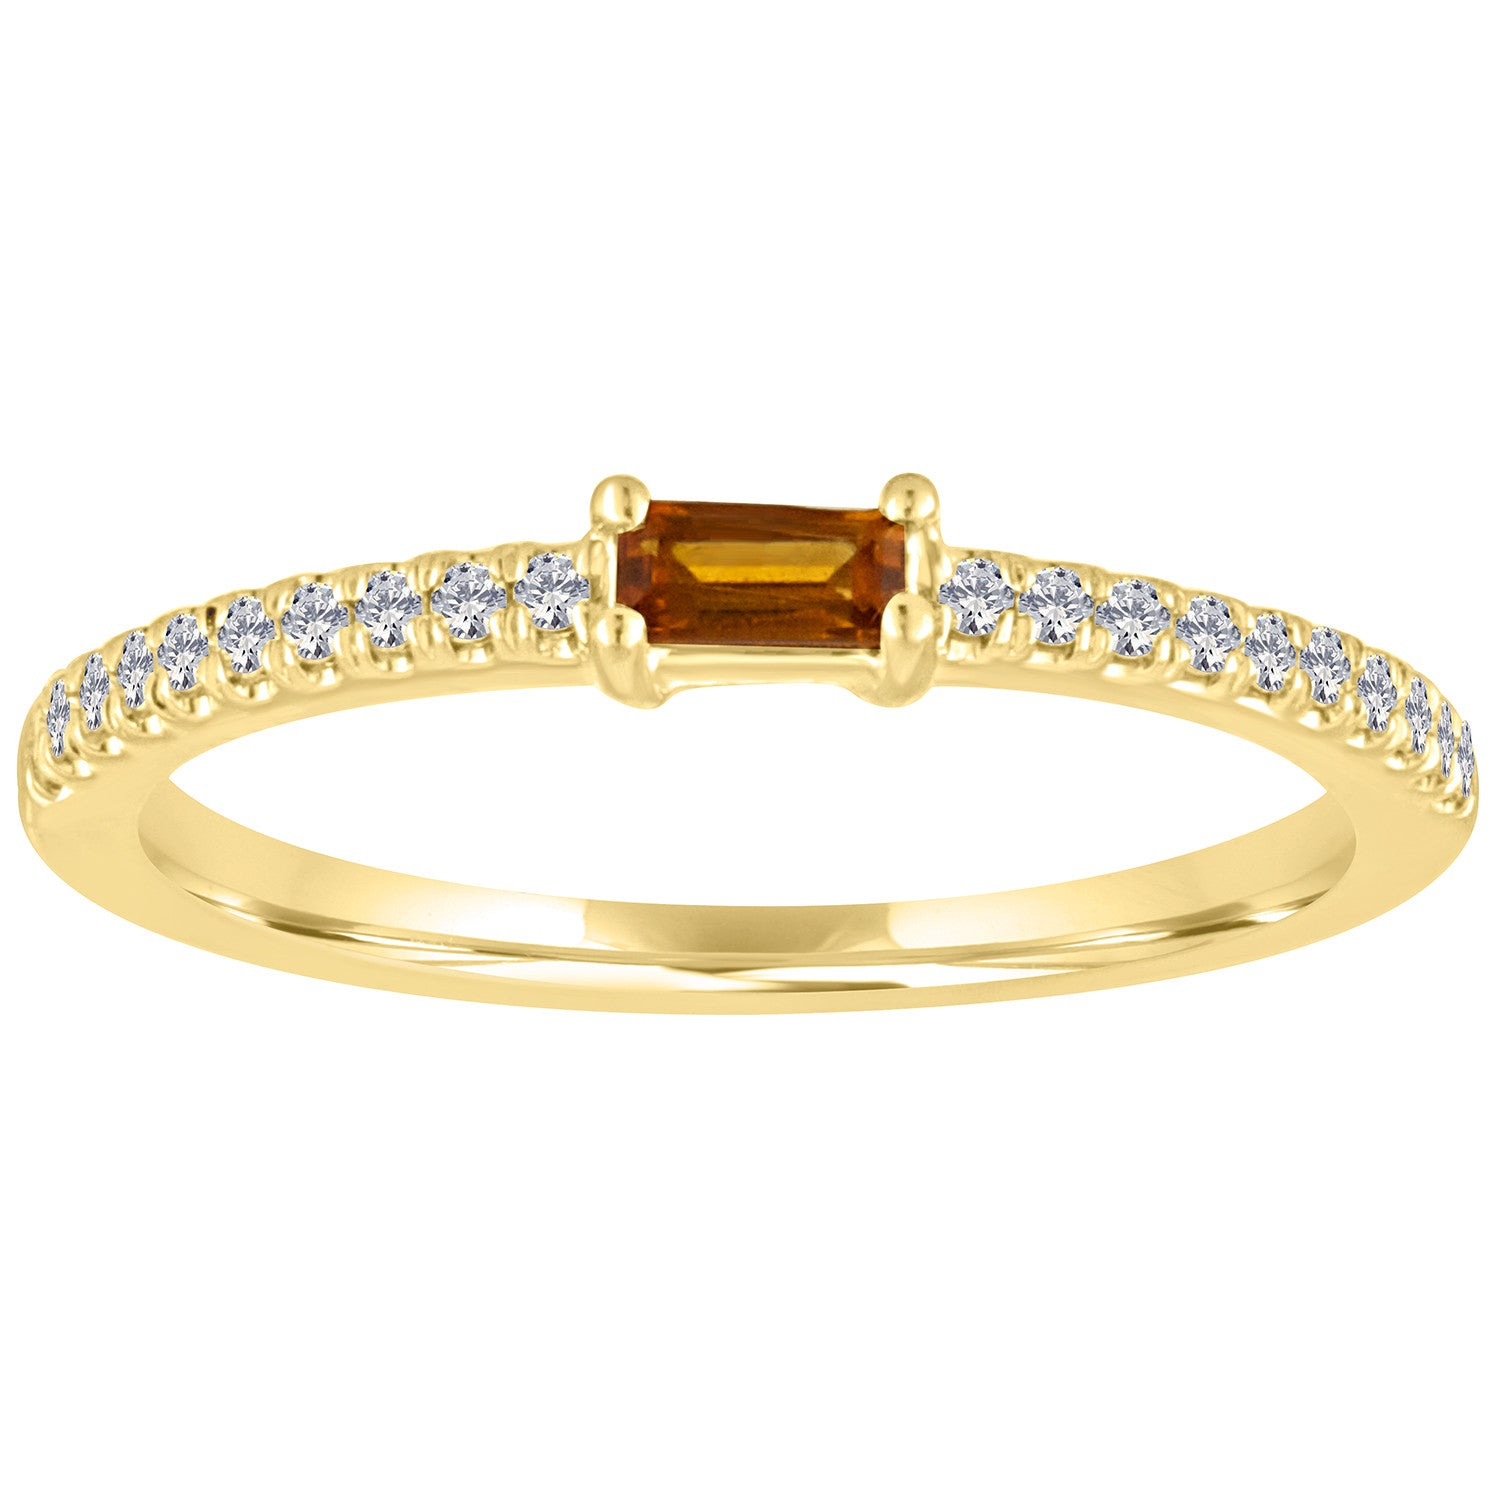 The Julia ring with citrine center